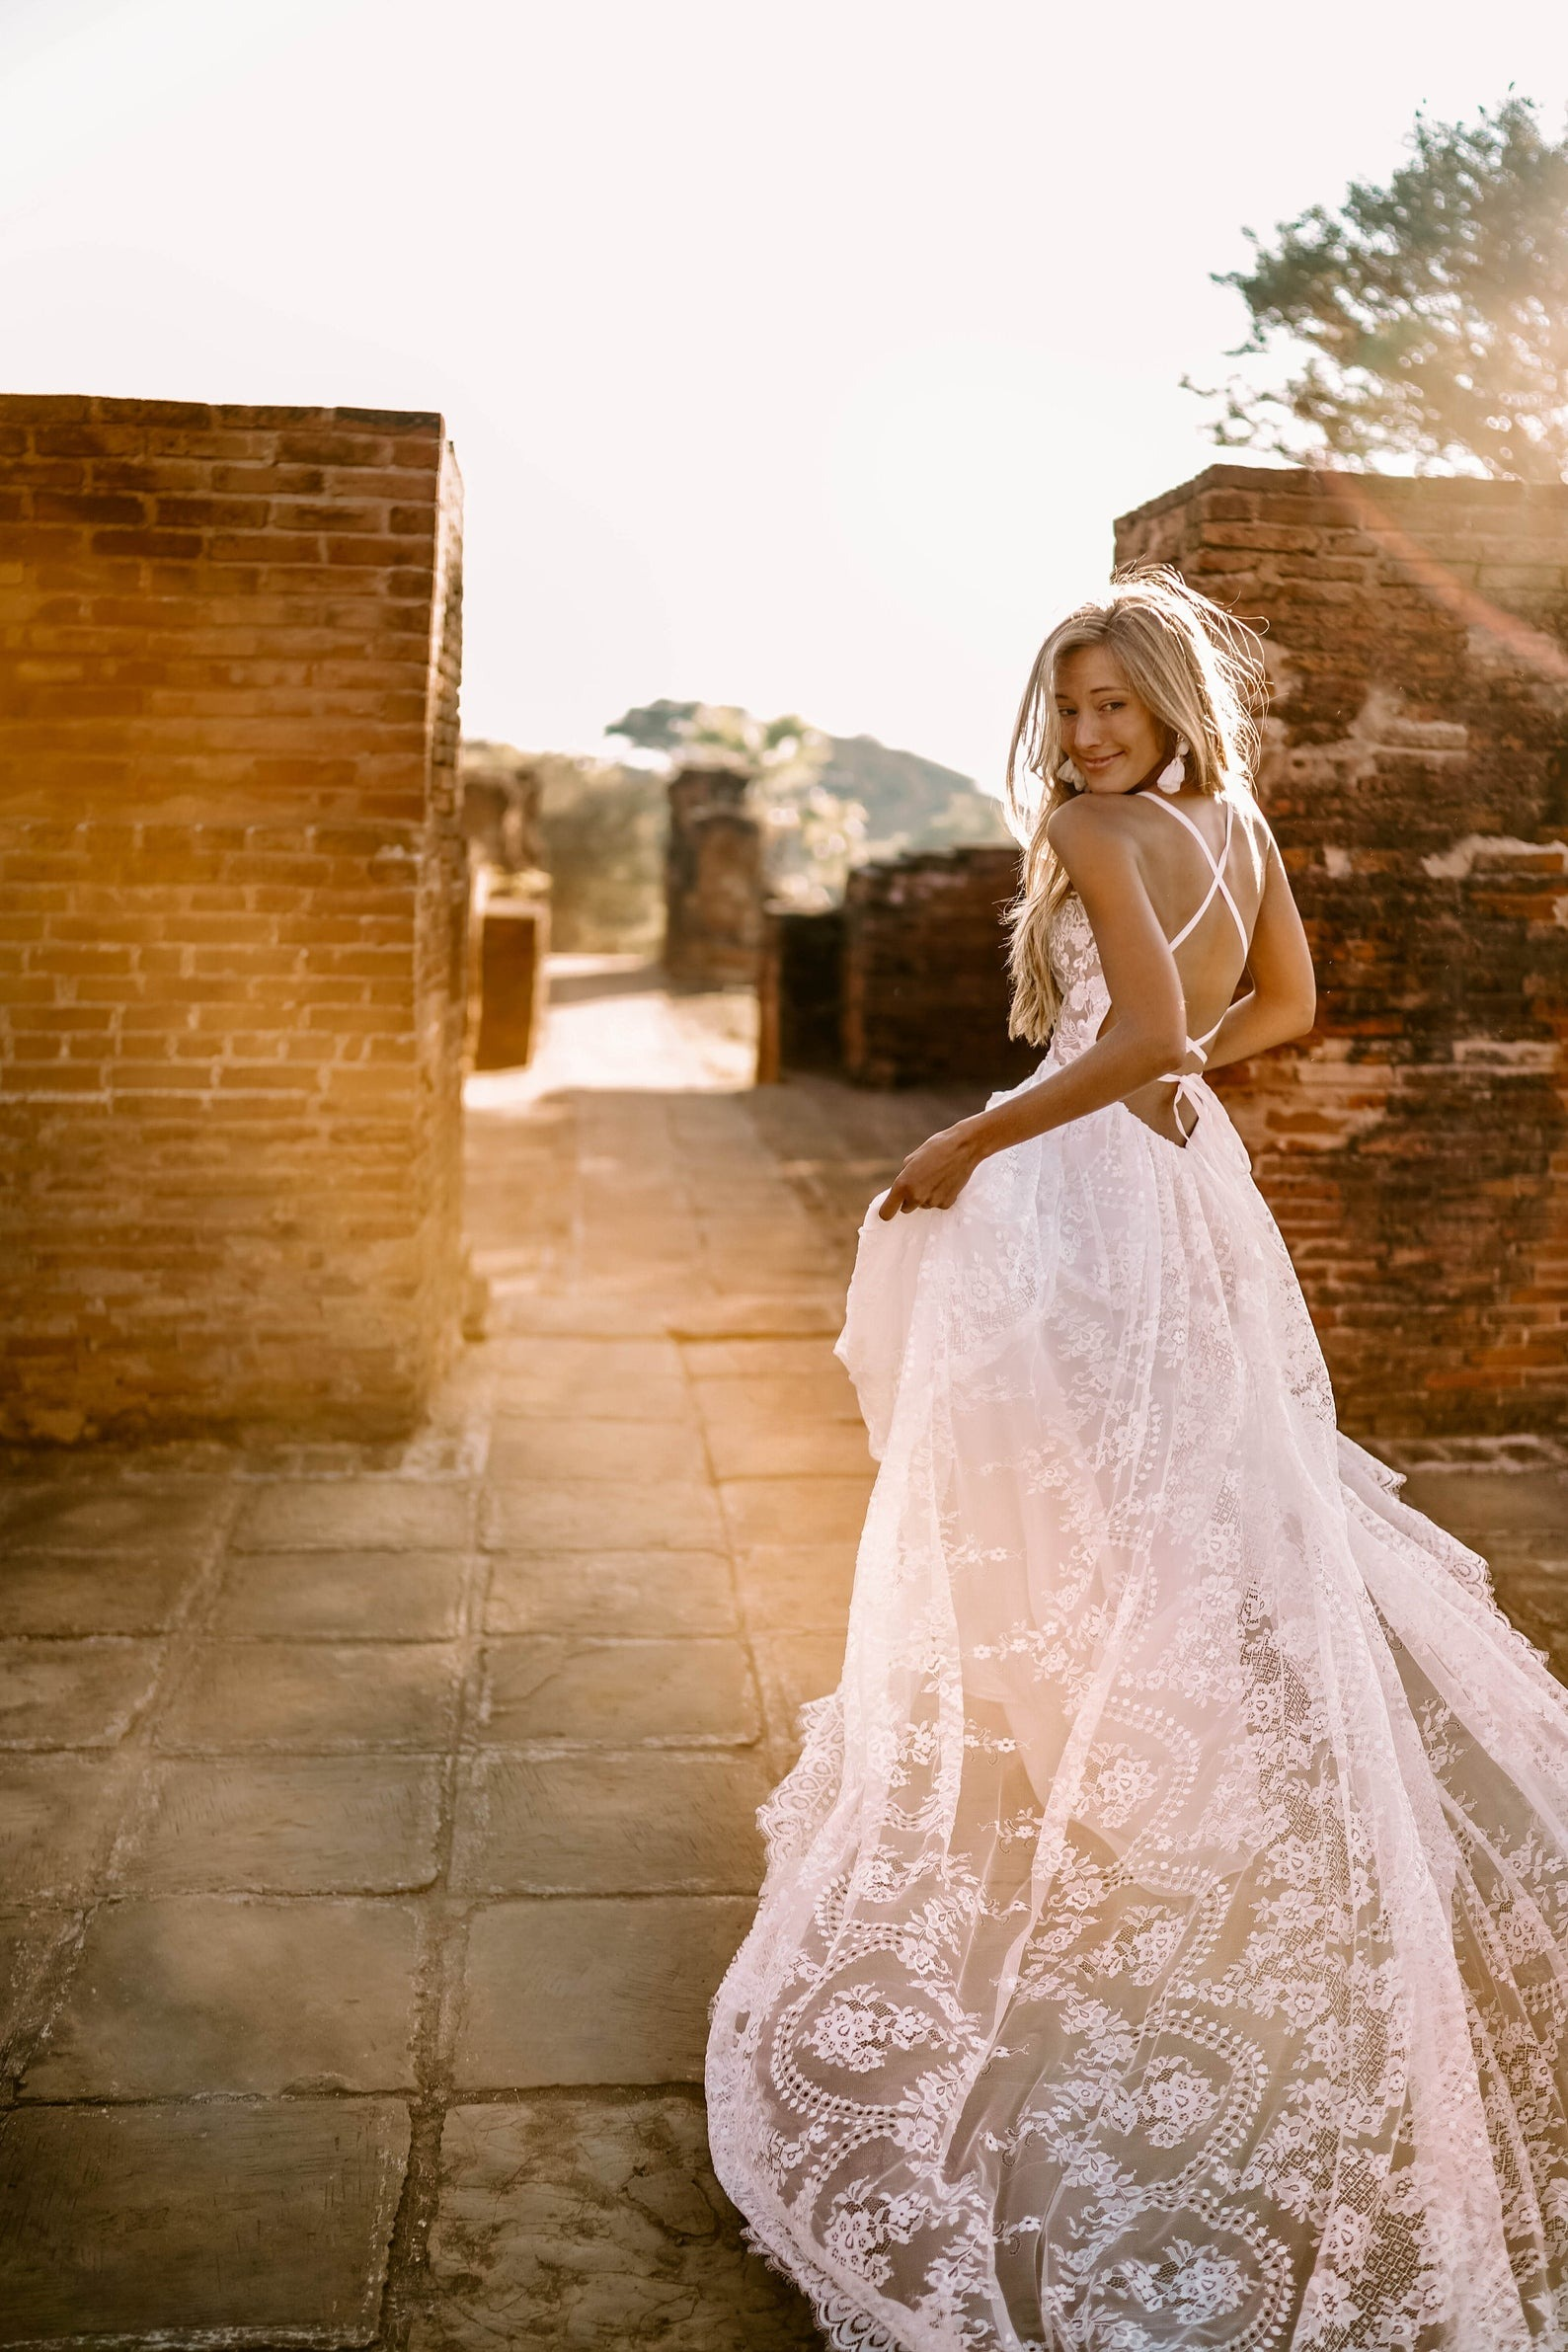 lace boho wedding dresses sold online by Flora and Lane on Etsy